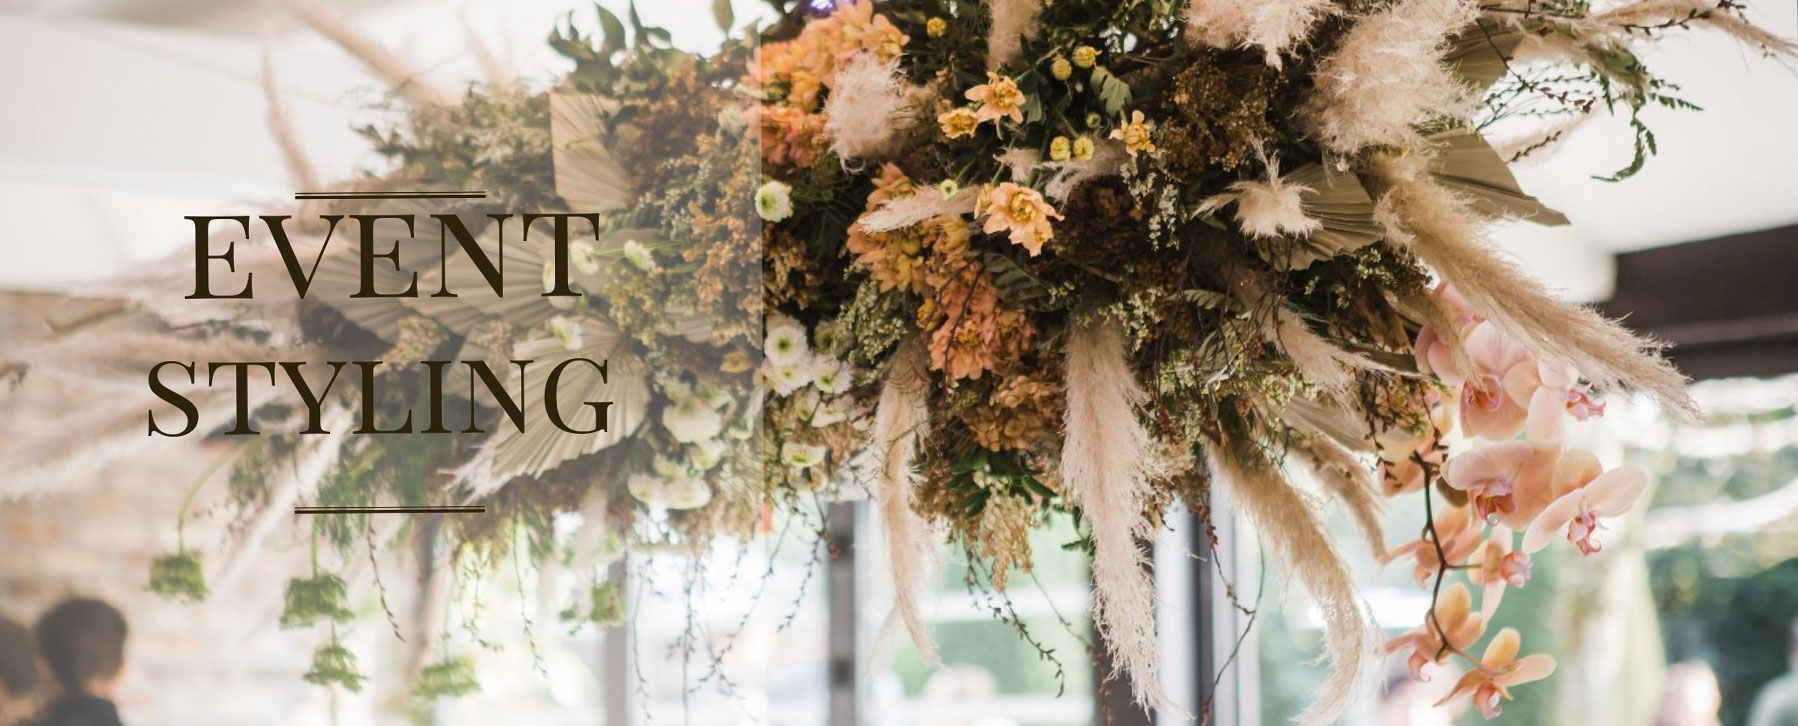 Wauw events - event styling